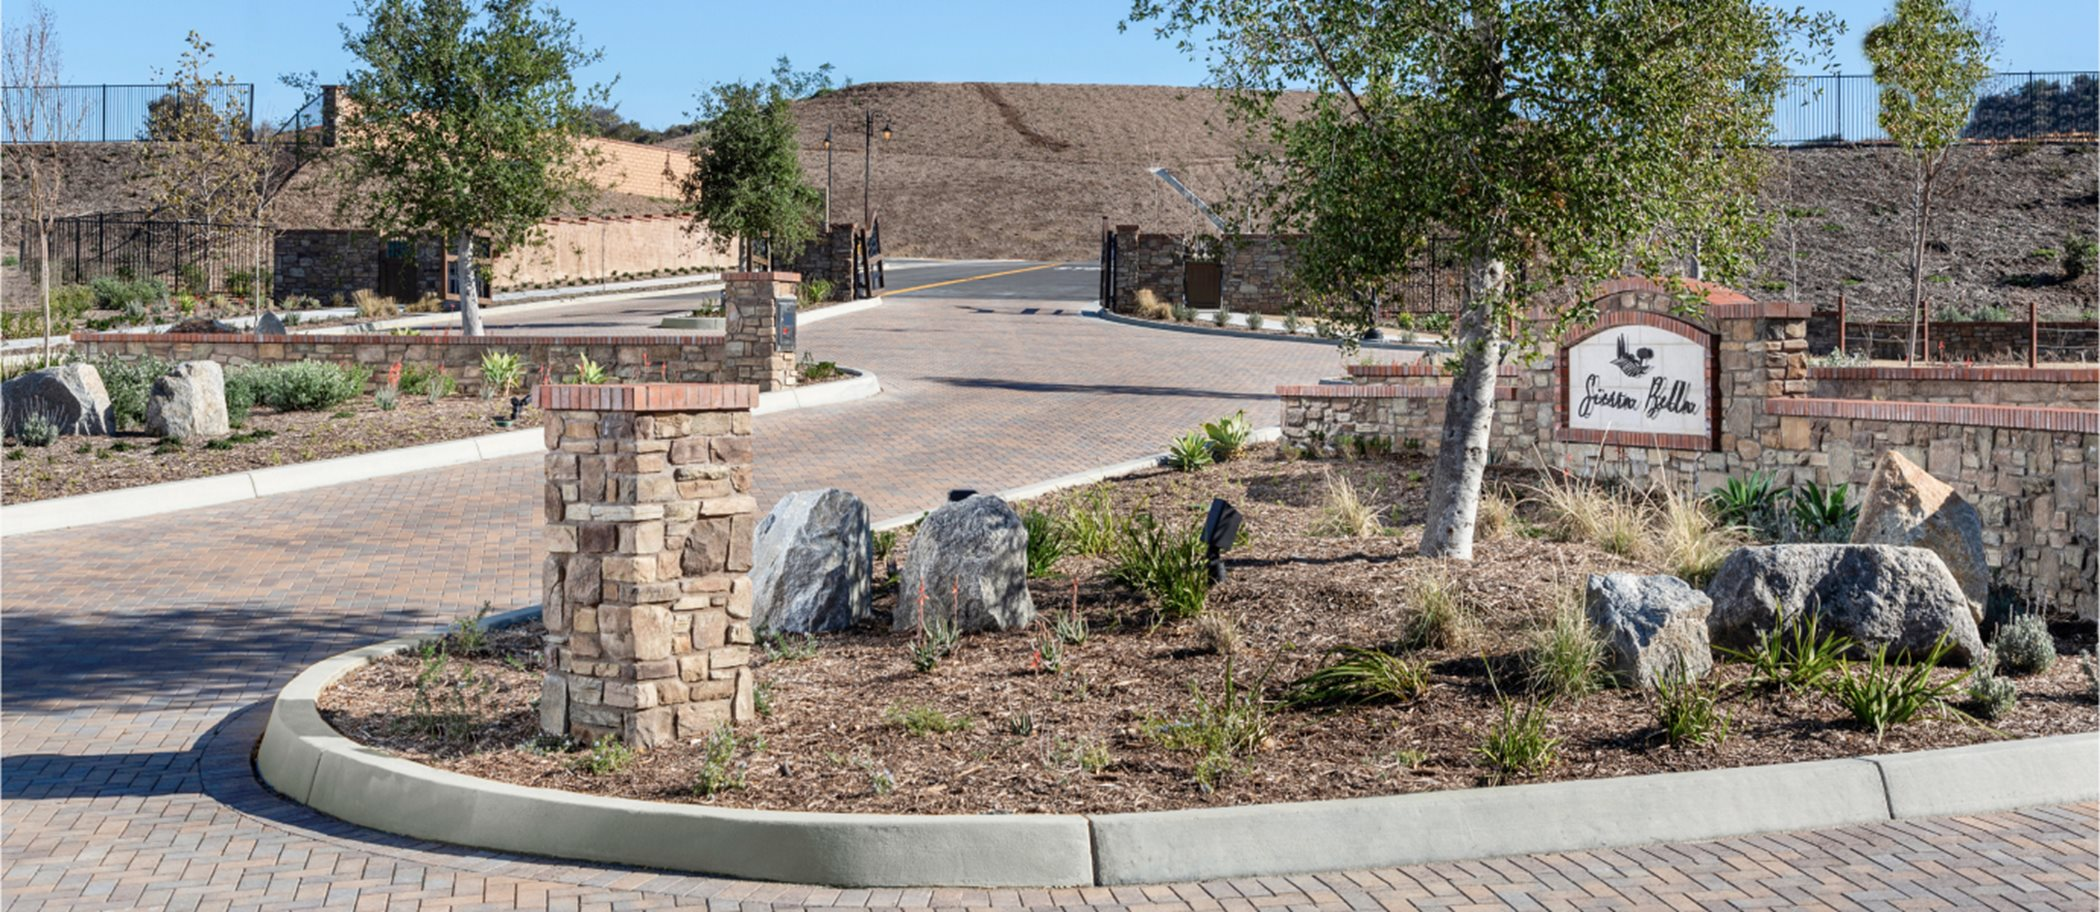 Sierra Bella new homes for sale that offers gorgeous natural surroundings